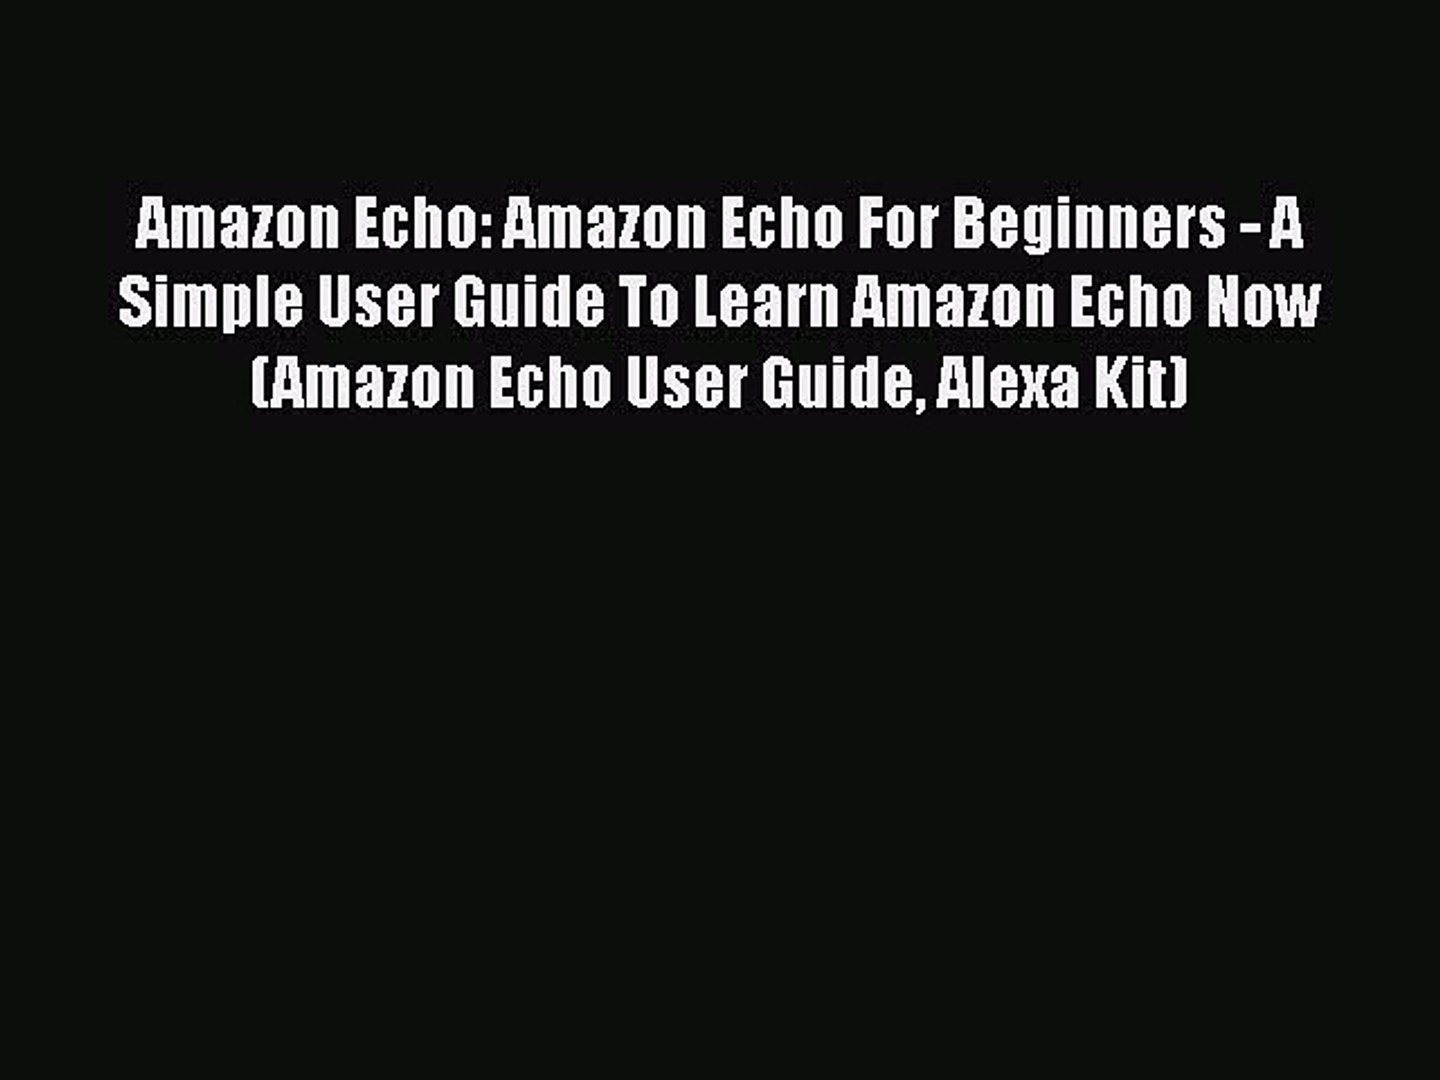 Download Amazon Echo: Amazon Echo For Beginners - A Simple User Guide To Learn Amazon Echo